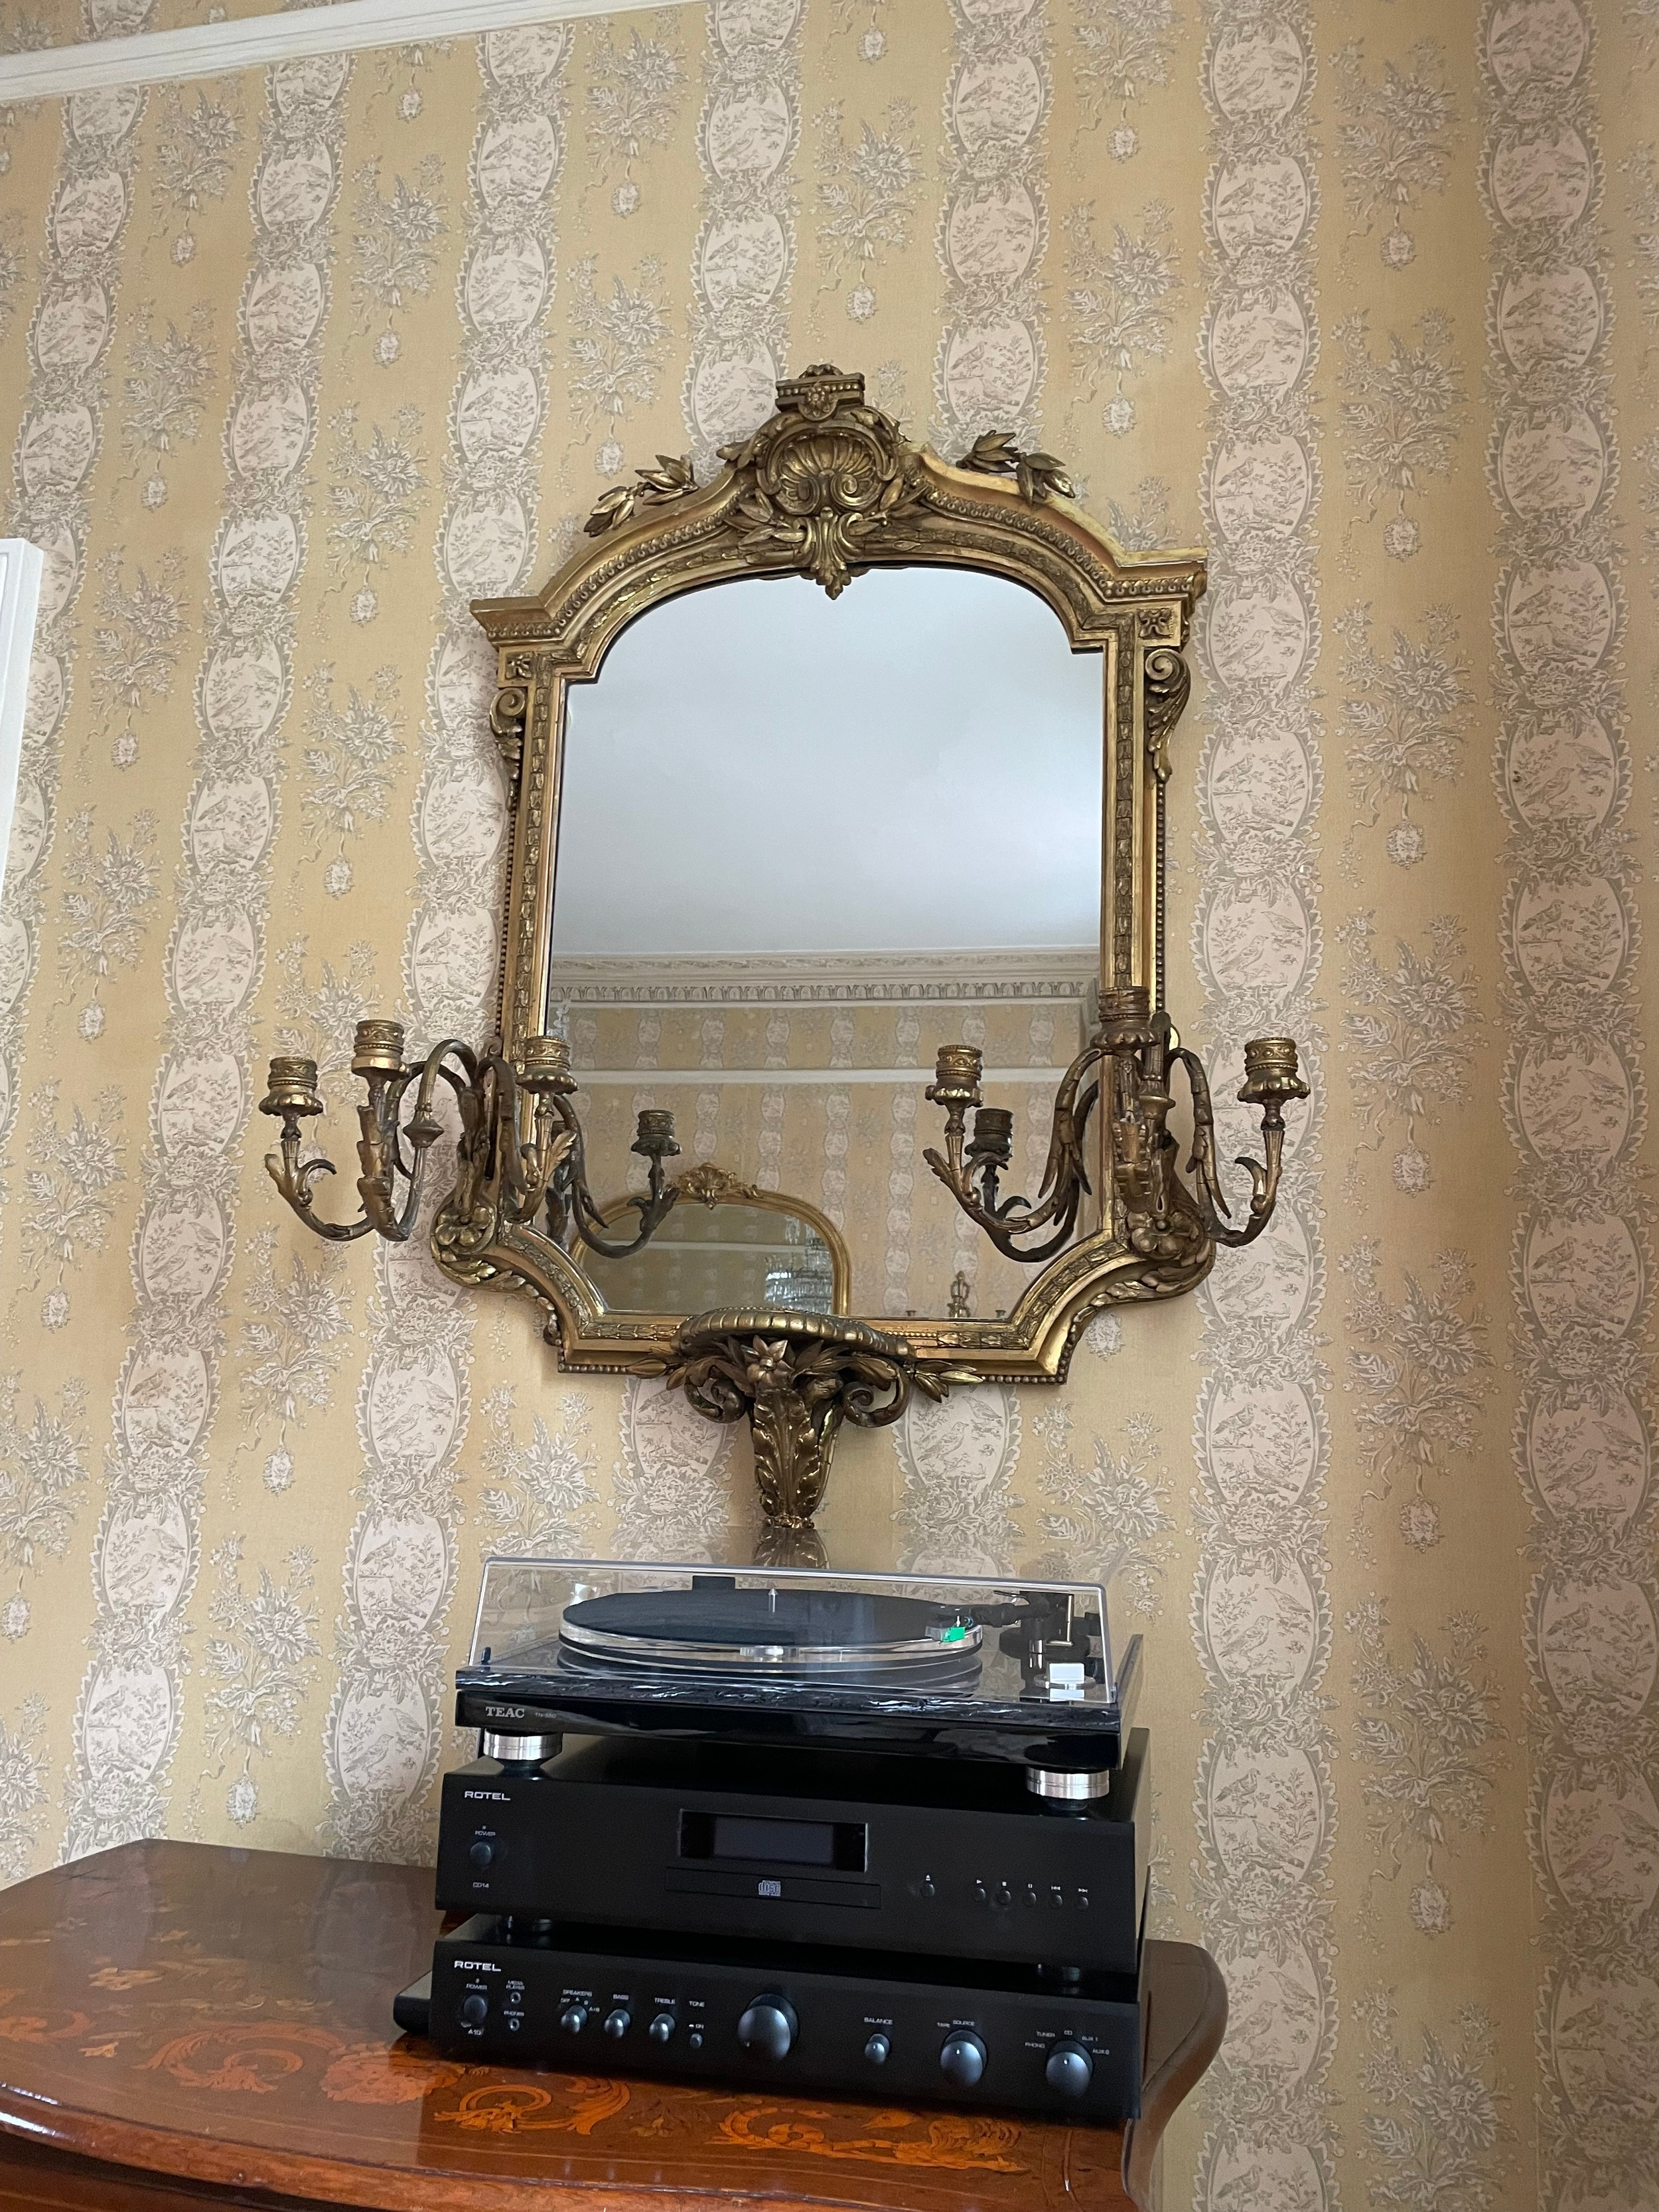 Good 19th century giltwood and gesso girandole mirror, the arch top moulded frame with a shell - Image 3 of 3